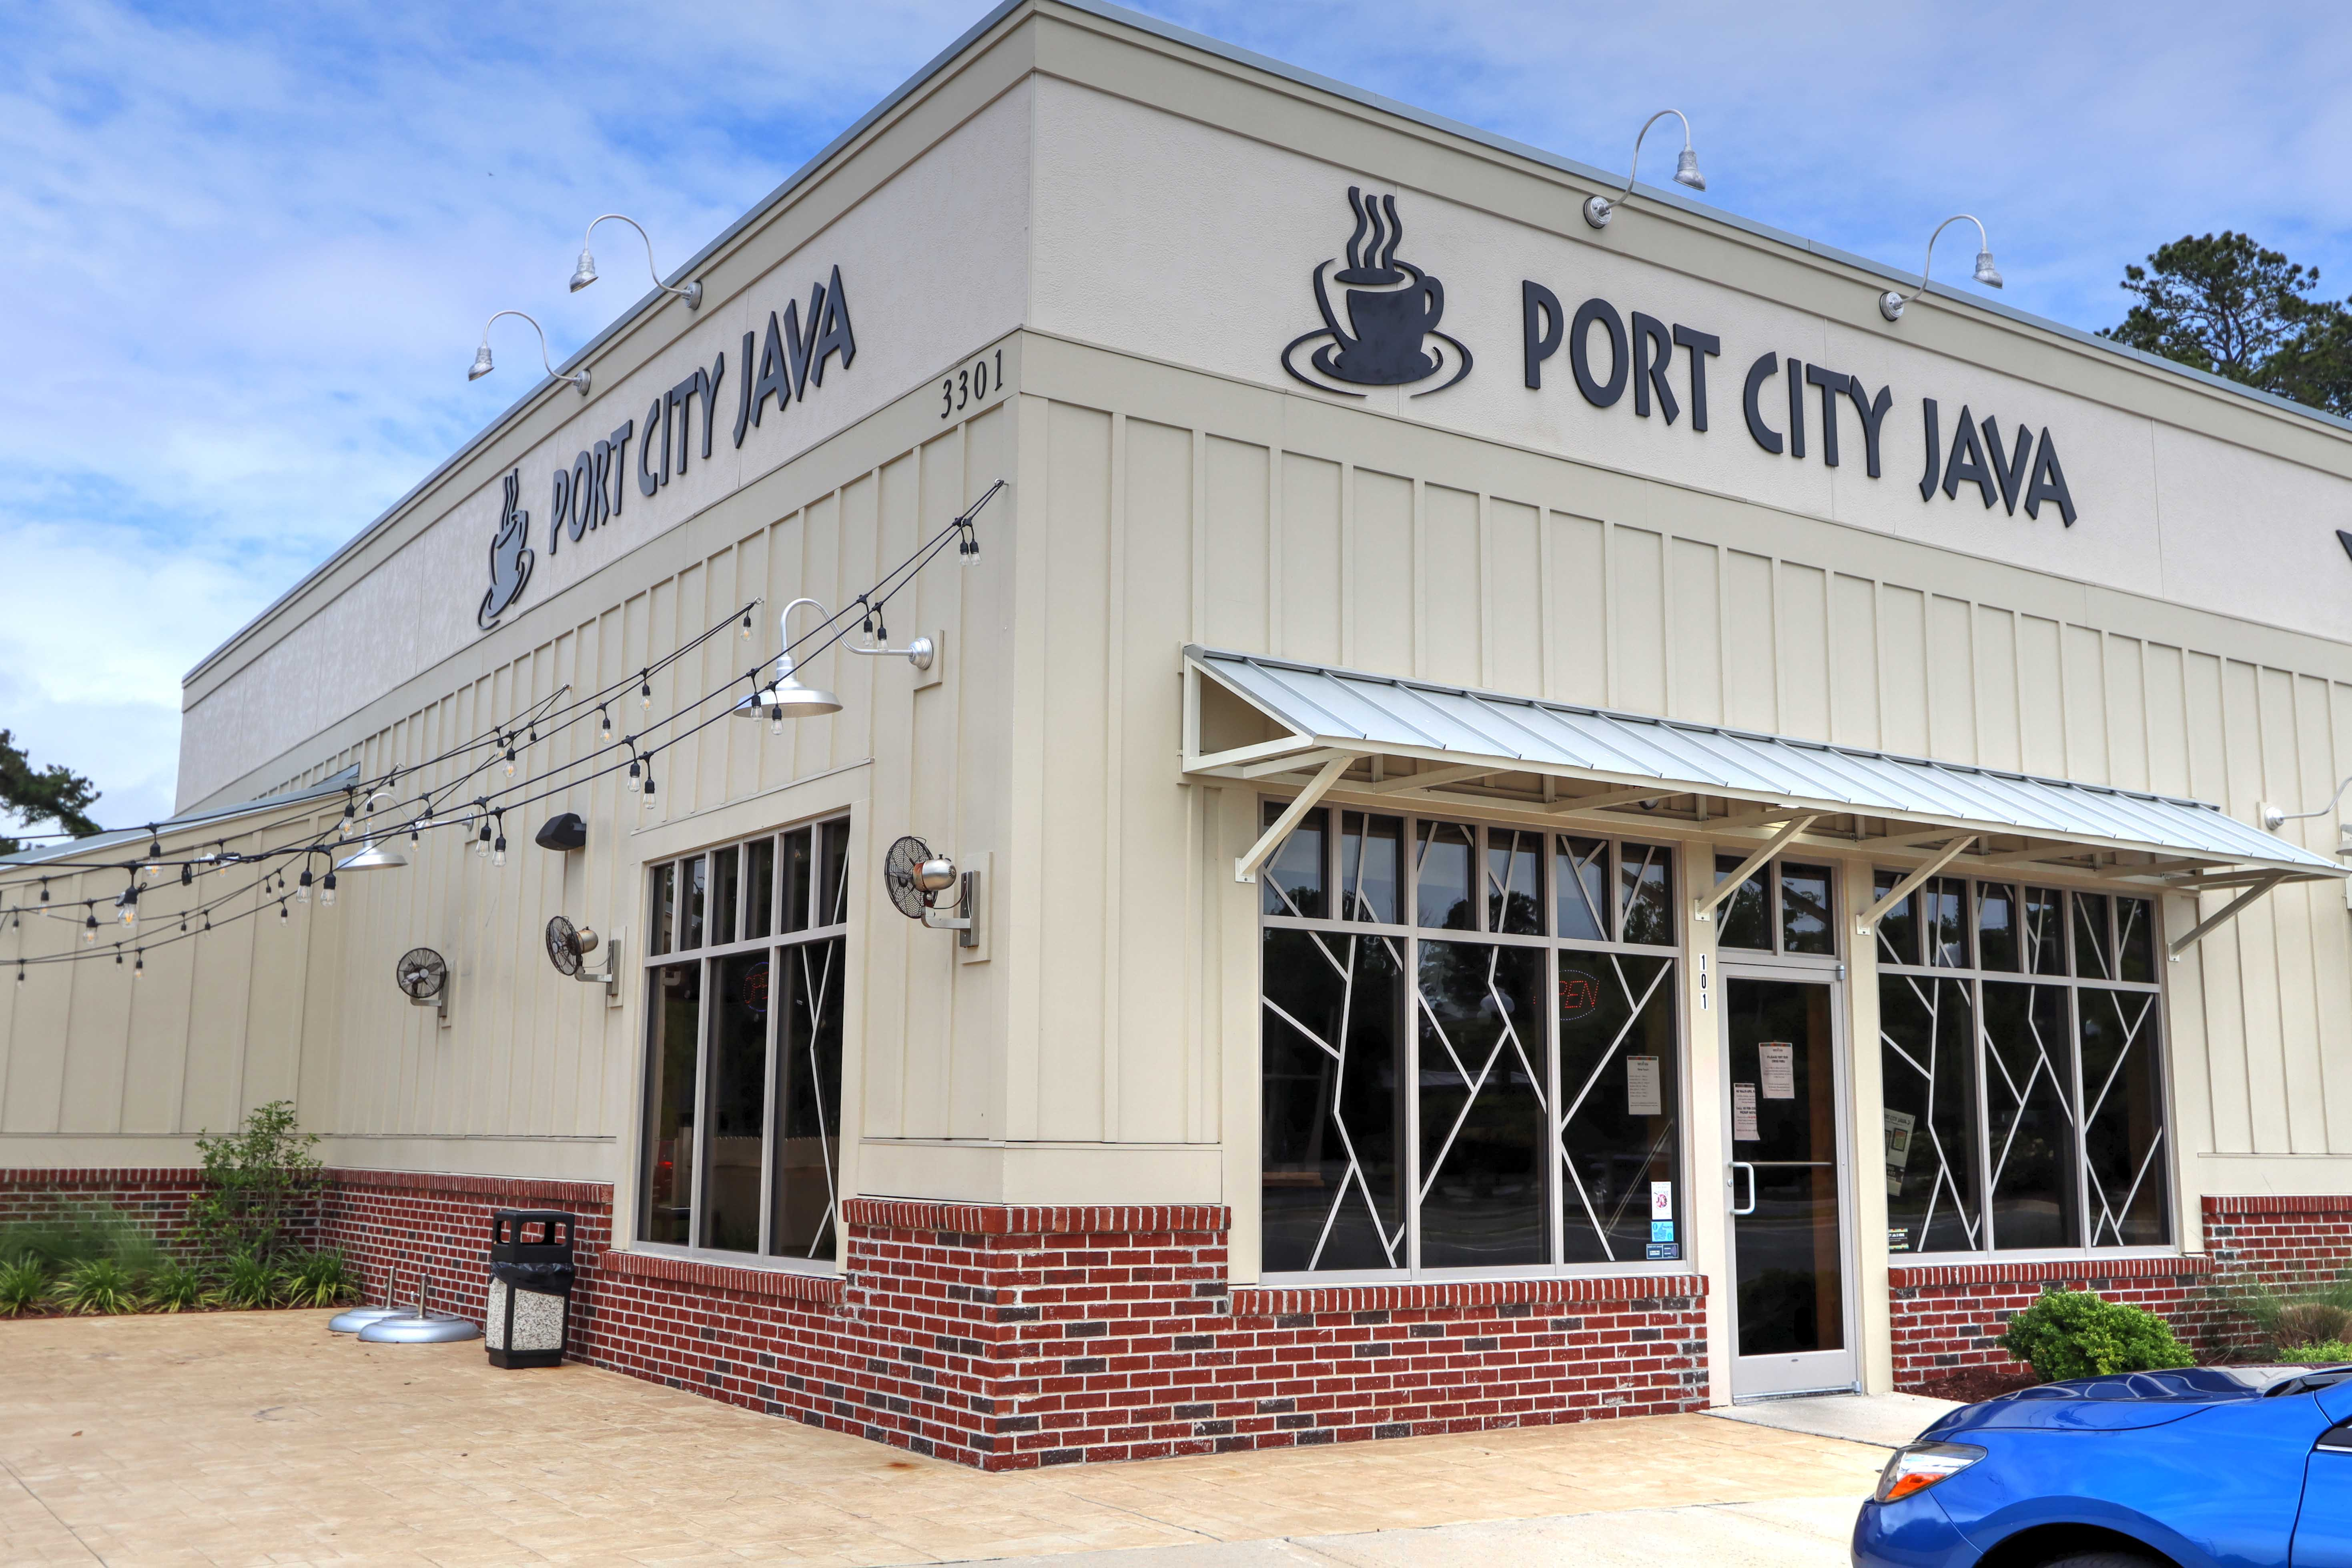 Port City Java Masonboro Loop